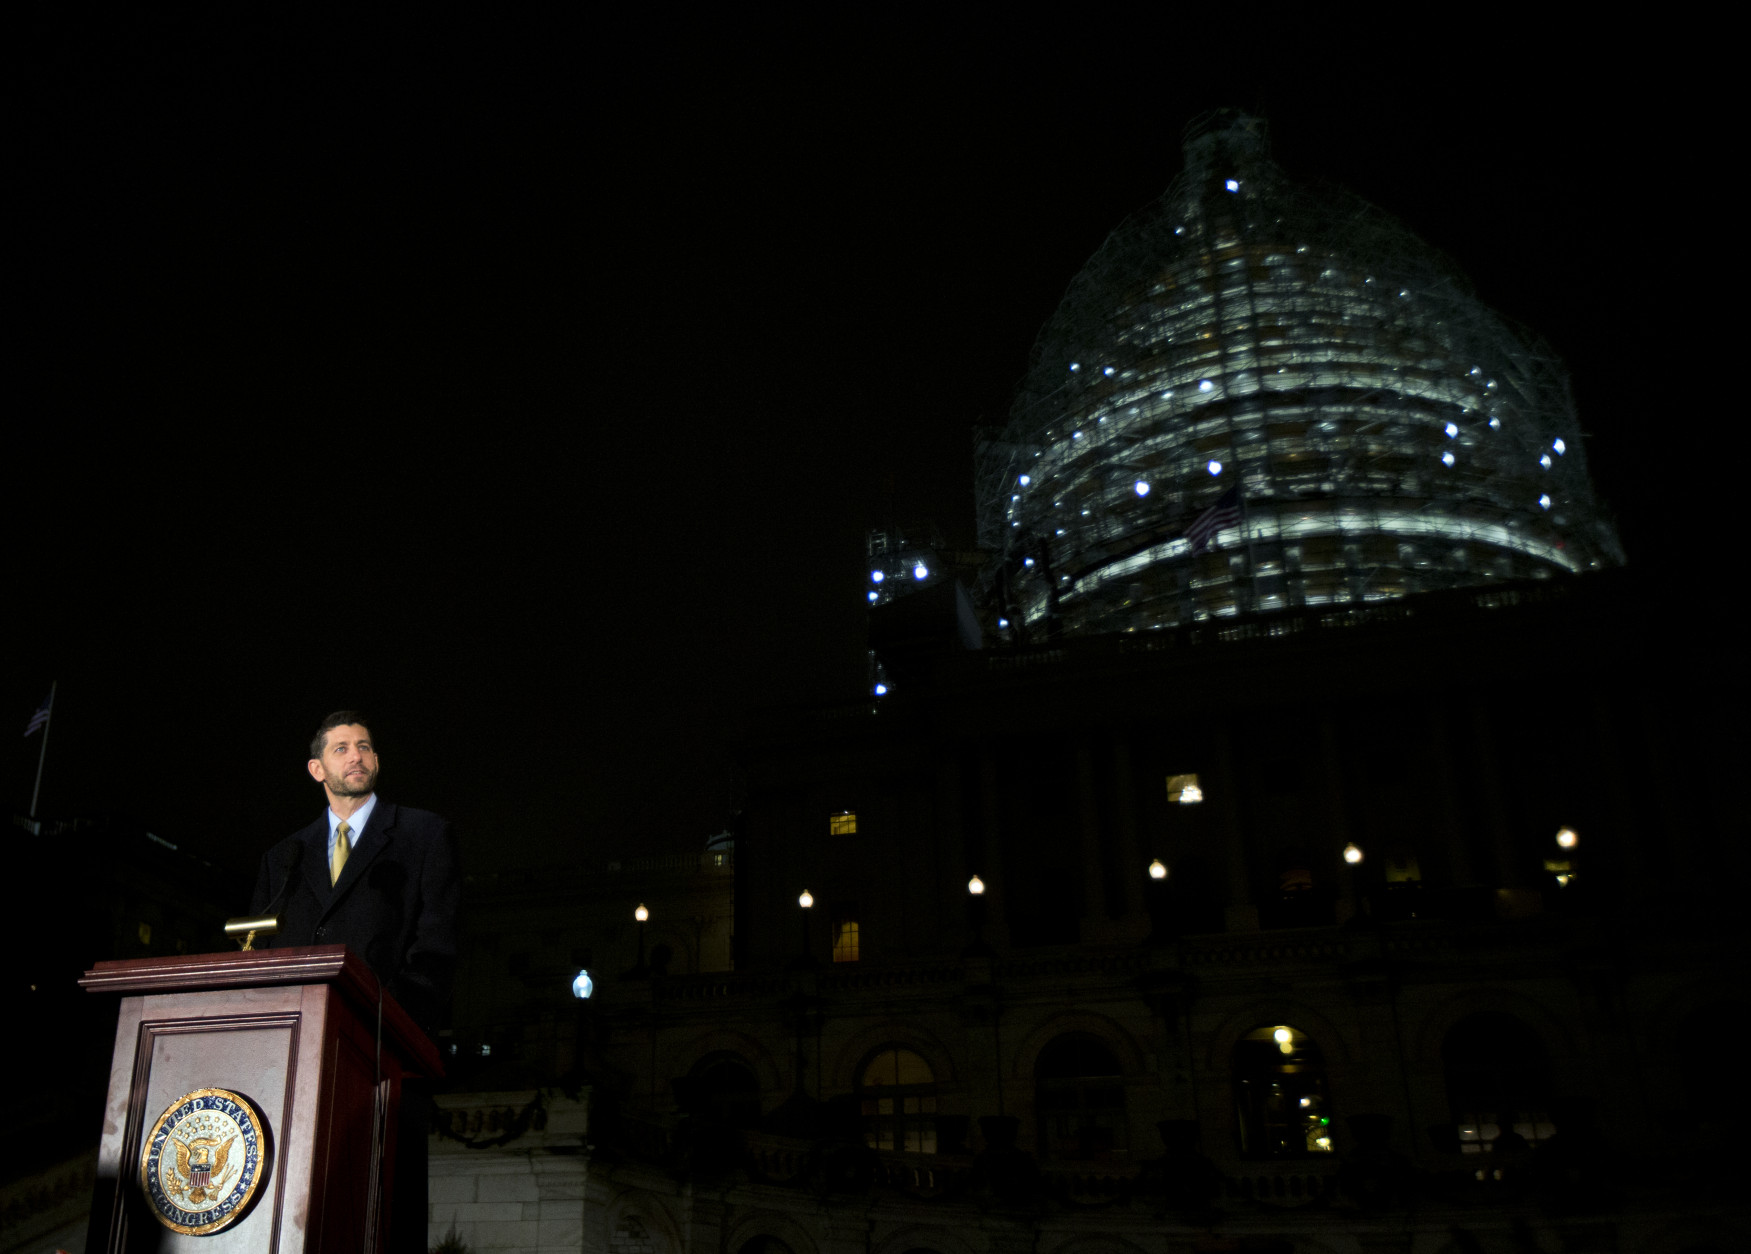 House Speaker Paul Ryan, R-Wis., speaks during the lighting of the U.S. Capitol Christmas tree, on the West Front of the Capitol in Washington, Wednesday, Dec. 2, 2015. The 2015 U.S. Capitol Christmas Tree is a 74 feet Lutz tree from Chugach National Forest in Alaska. (AP Photo/Manuel Balce Ceneta)